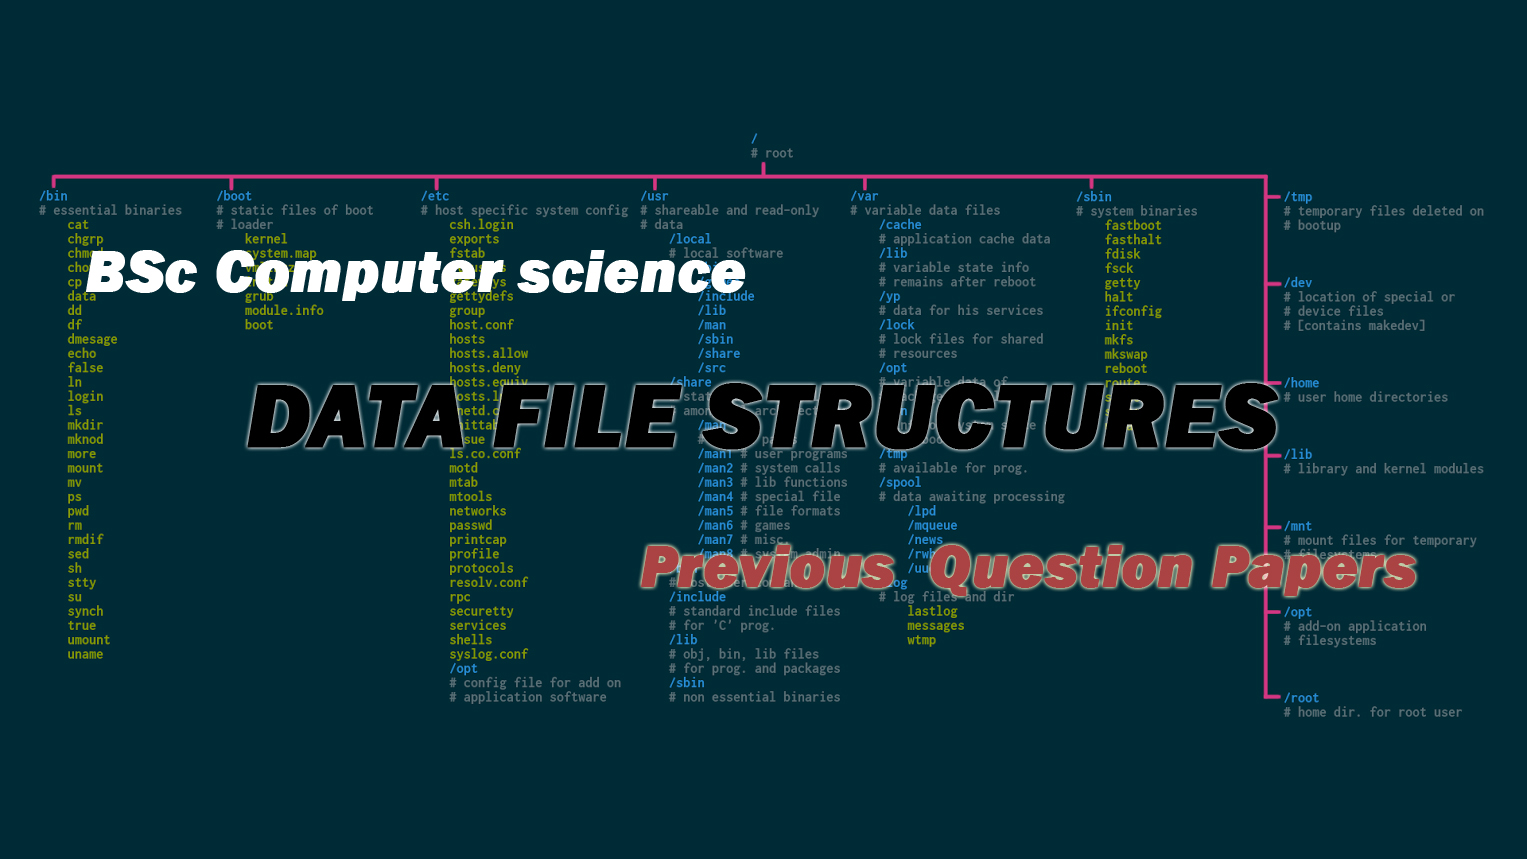 BSc Computer Science Data File Structures Previous Question Papers